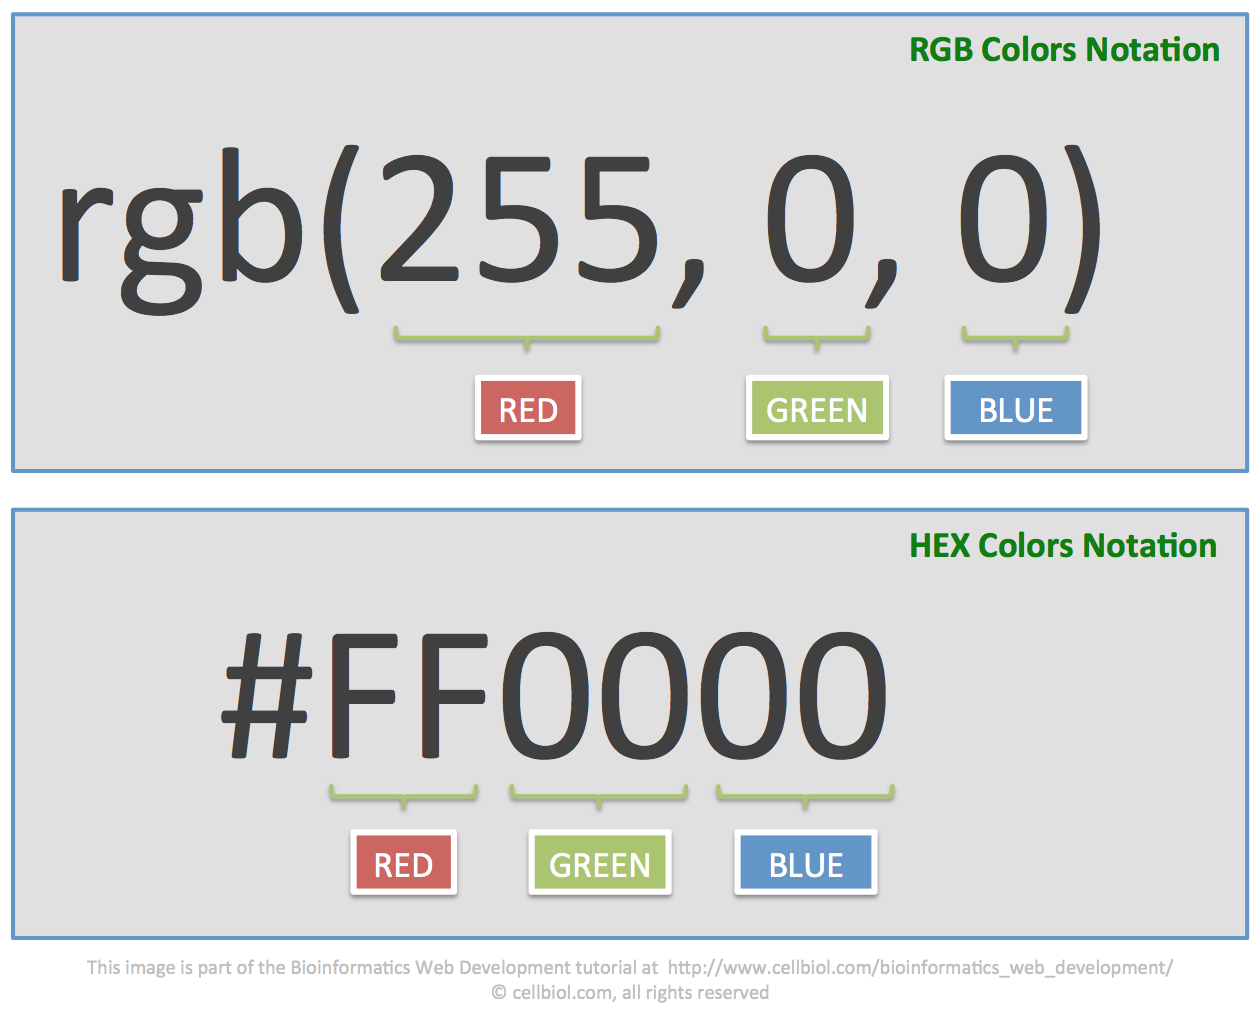 RGB and HEX Colors Notations for the red color